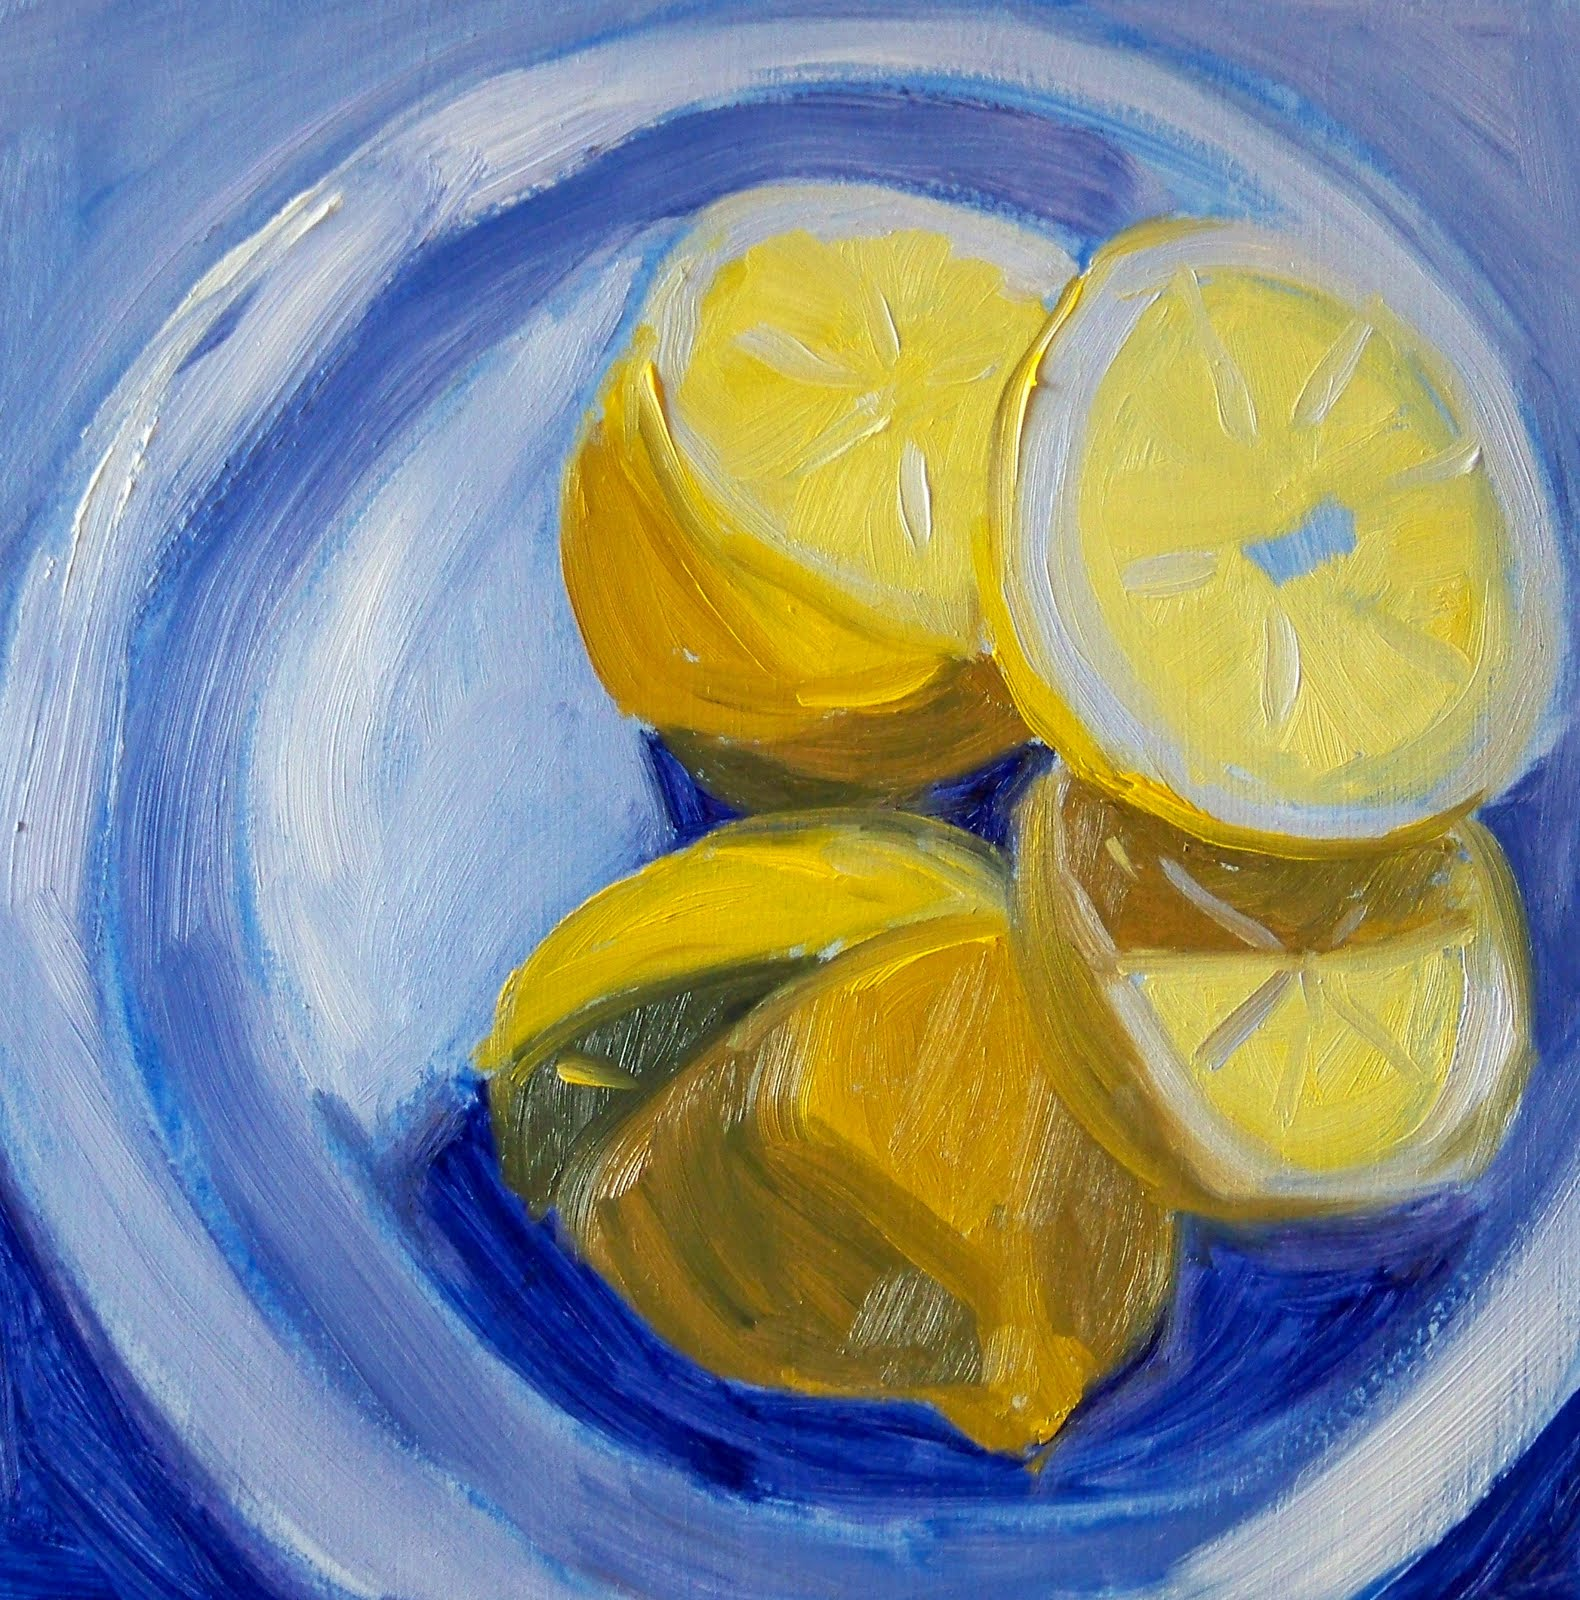 Painting Small Impressions: Lemon Blue, Oil Painting